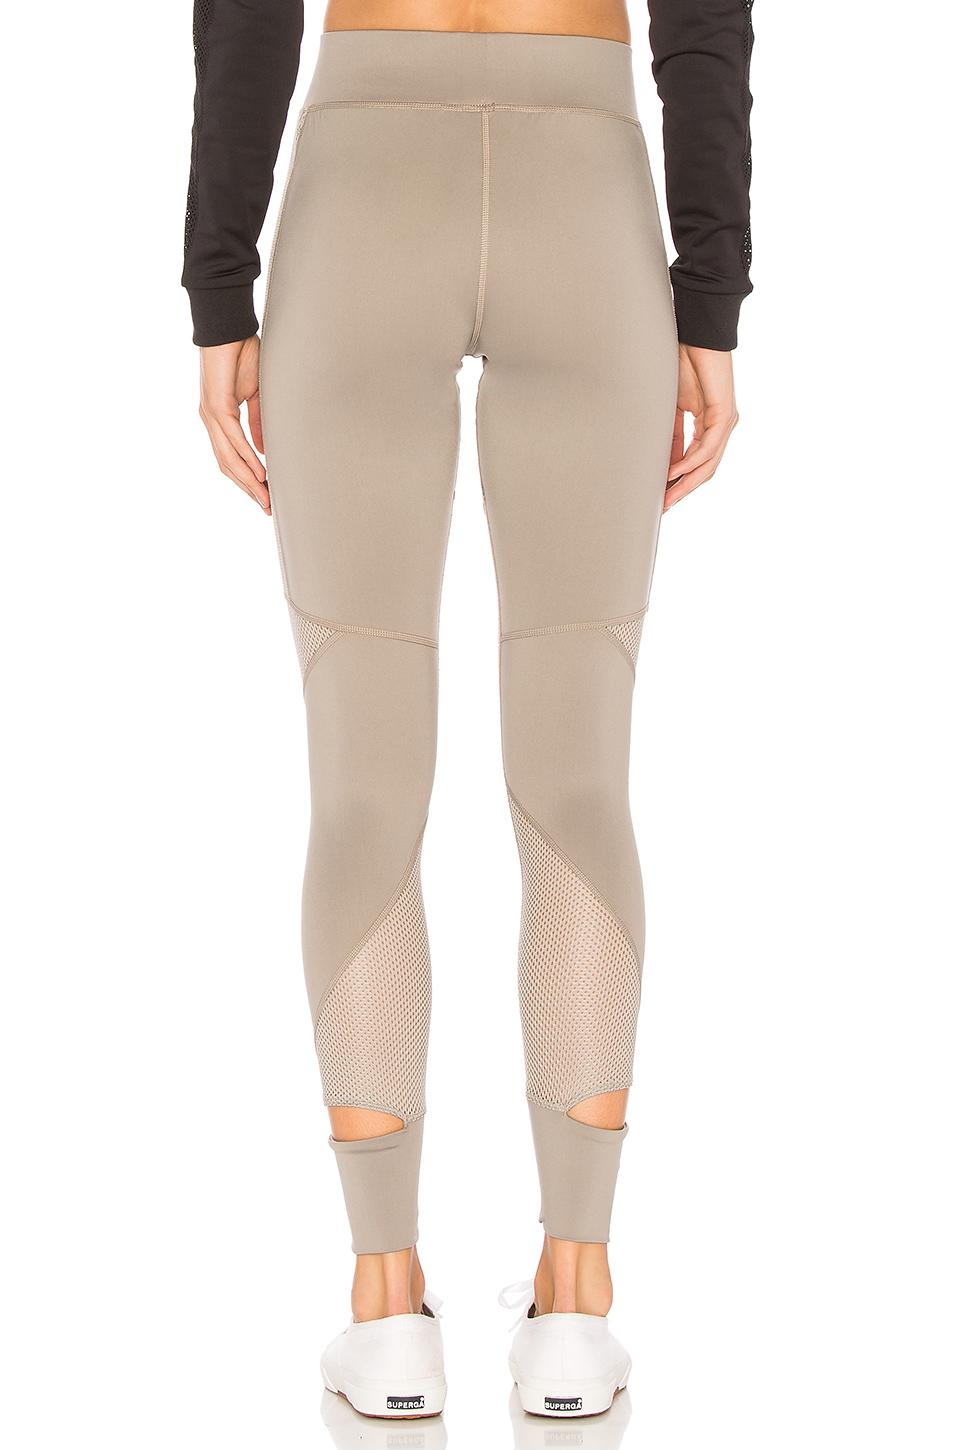 Puma En Pointe Legging in Green - Lyst d08406bc4